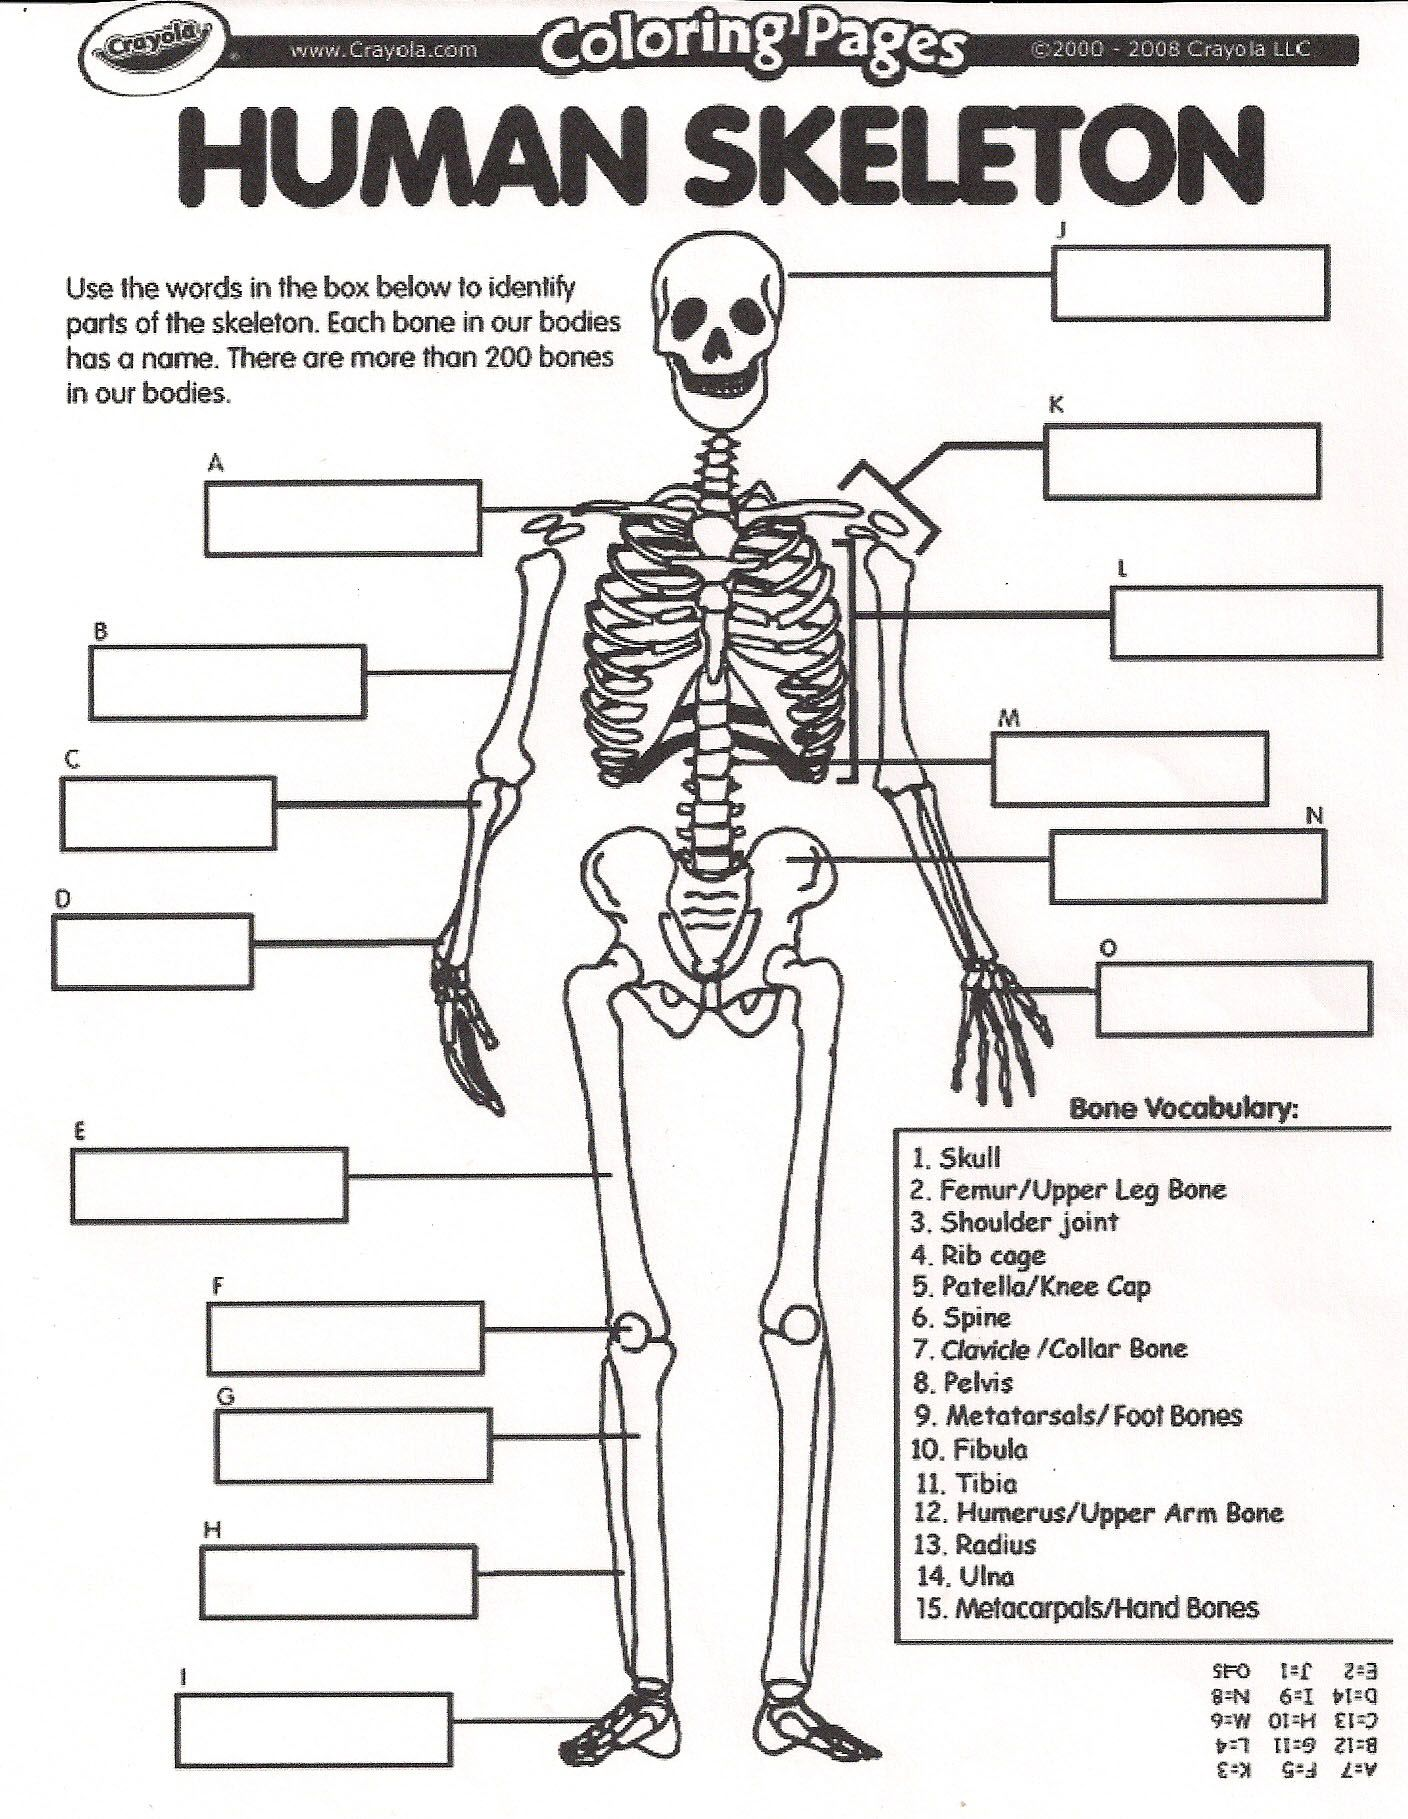 Worksheets Skeletal System Worksheet collection of human skeletal system worksheets bloggakuten bloggakuten